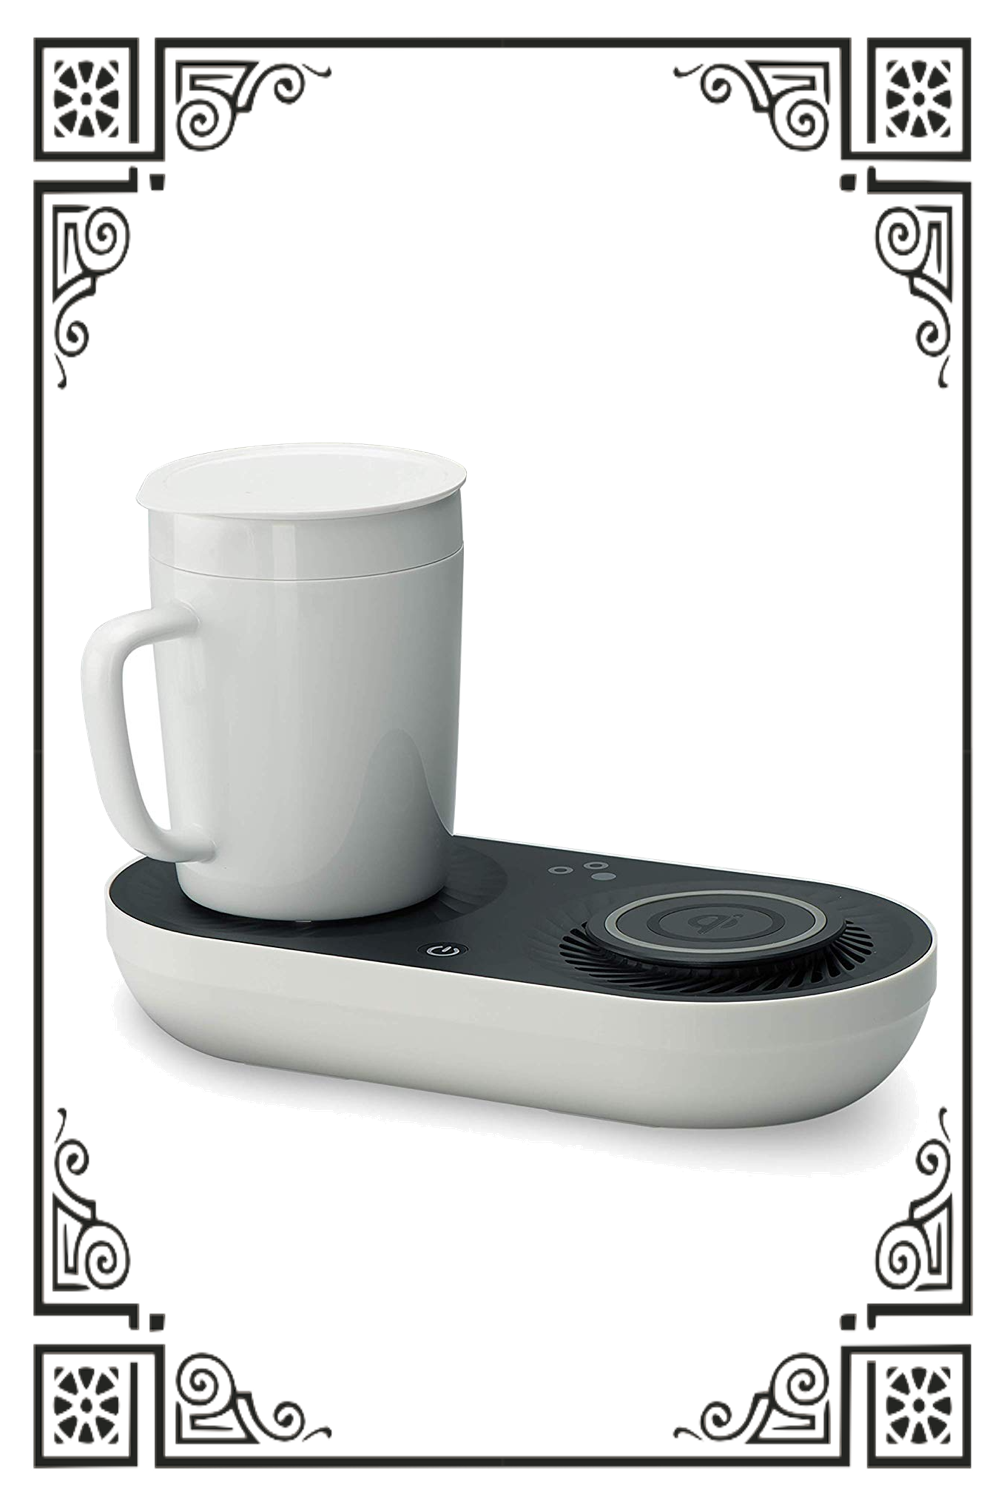 qi-charger-drink-cooler-warmer.png